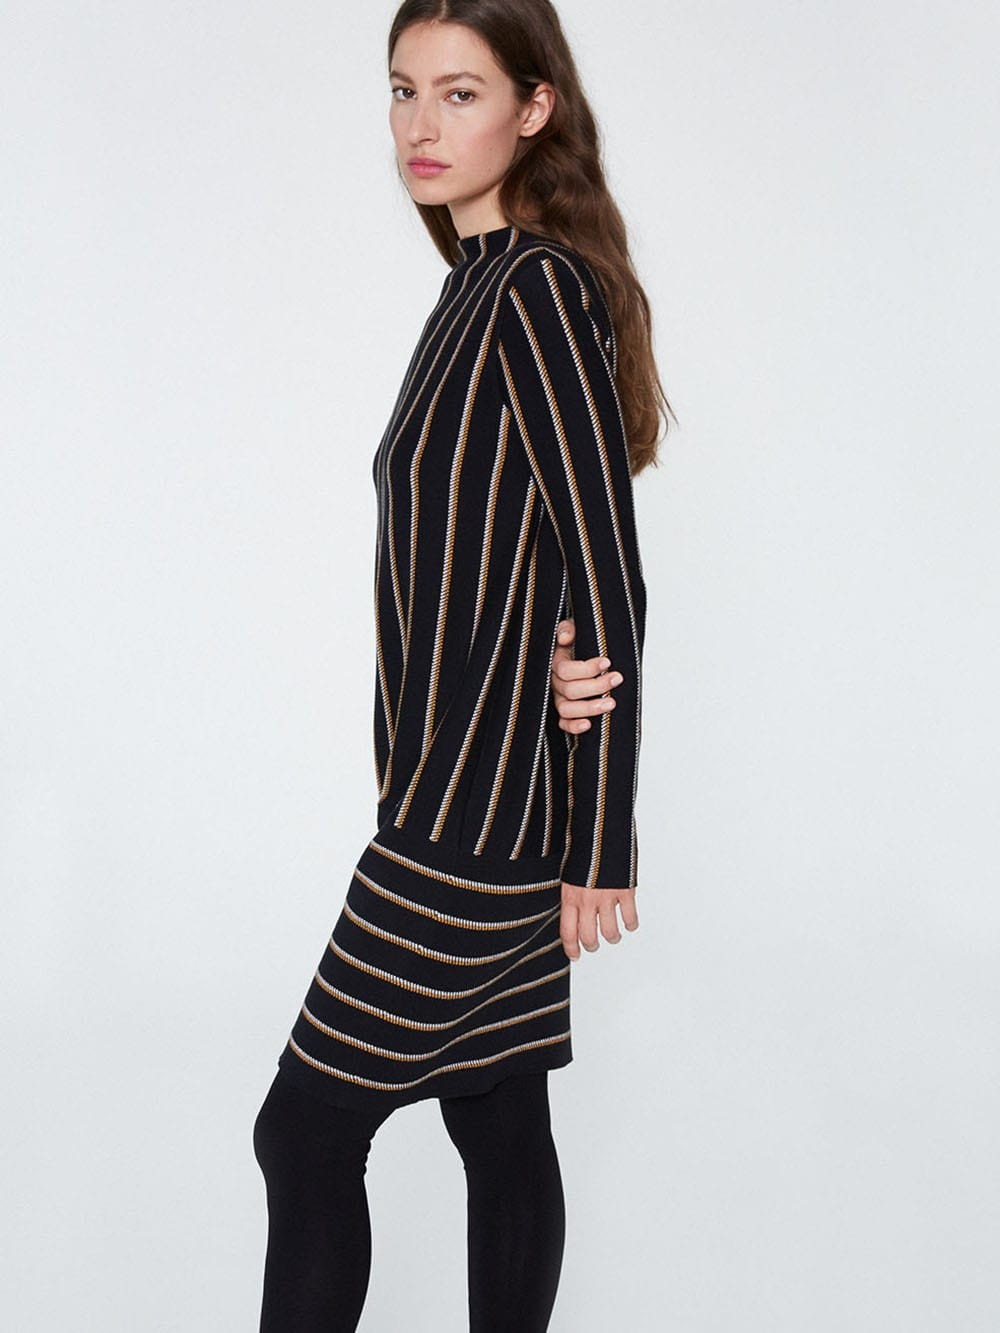 Black dress with yellow stripes made with organic cotton-Keoni